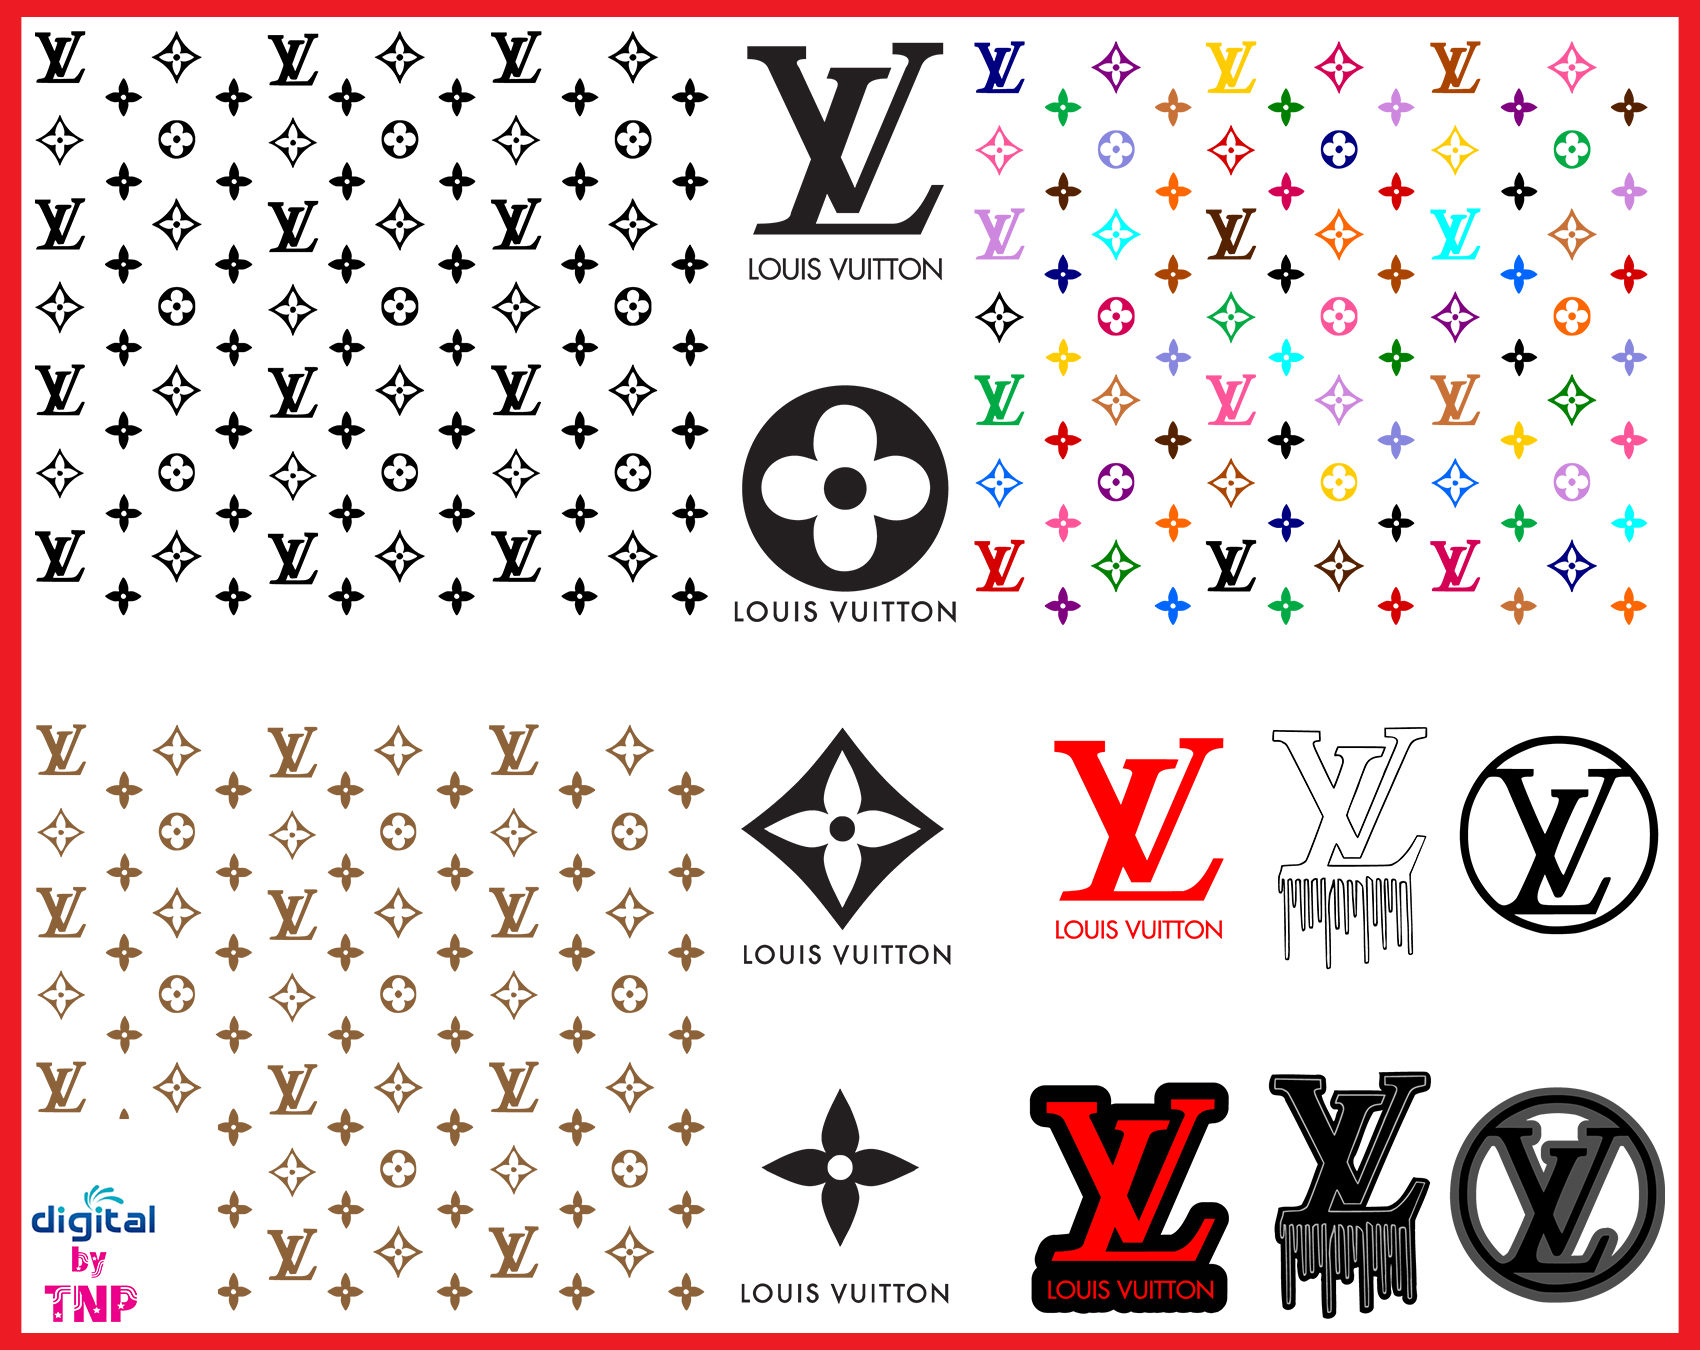 Louis Vuitton Svg Lv Bundle Brand Logo Svg Louis Vuitton Pattern Cricut File Silhouette Cameo Svg Png Eps Dxf Customer Satisfaction Is Our Priority